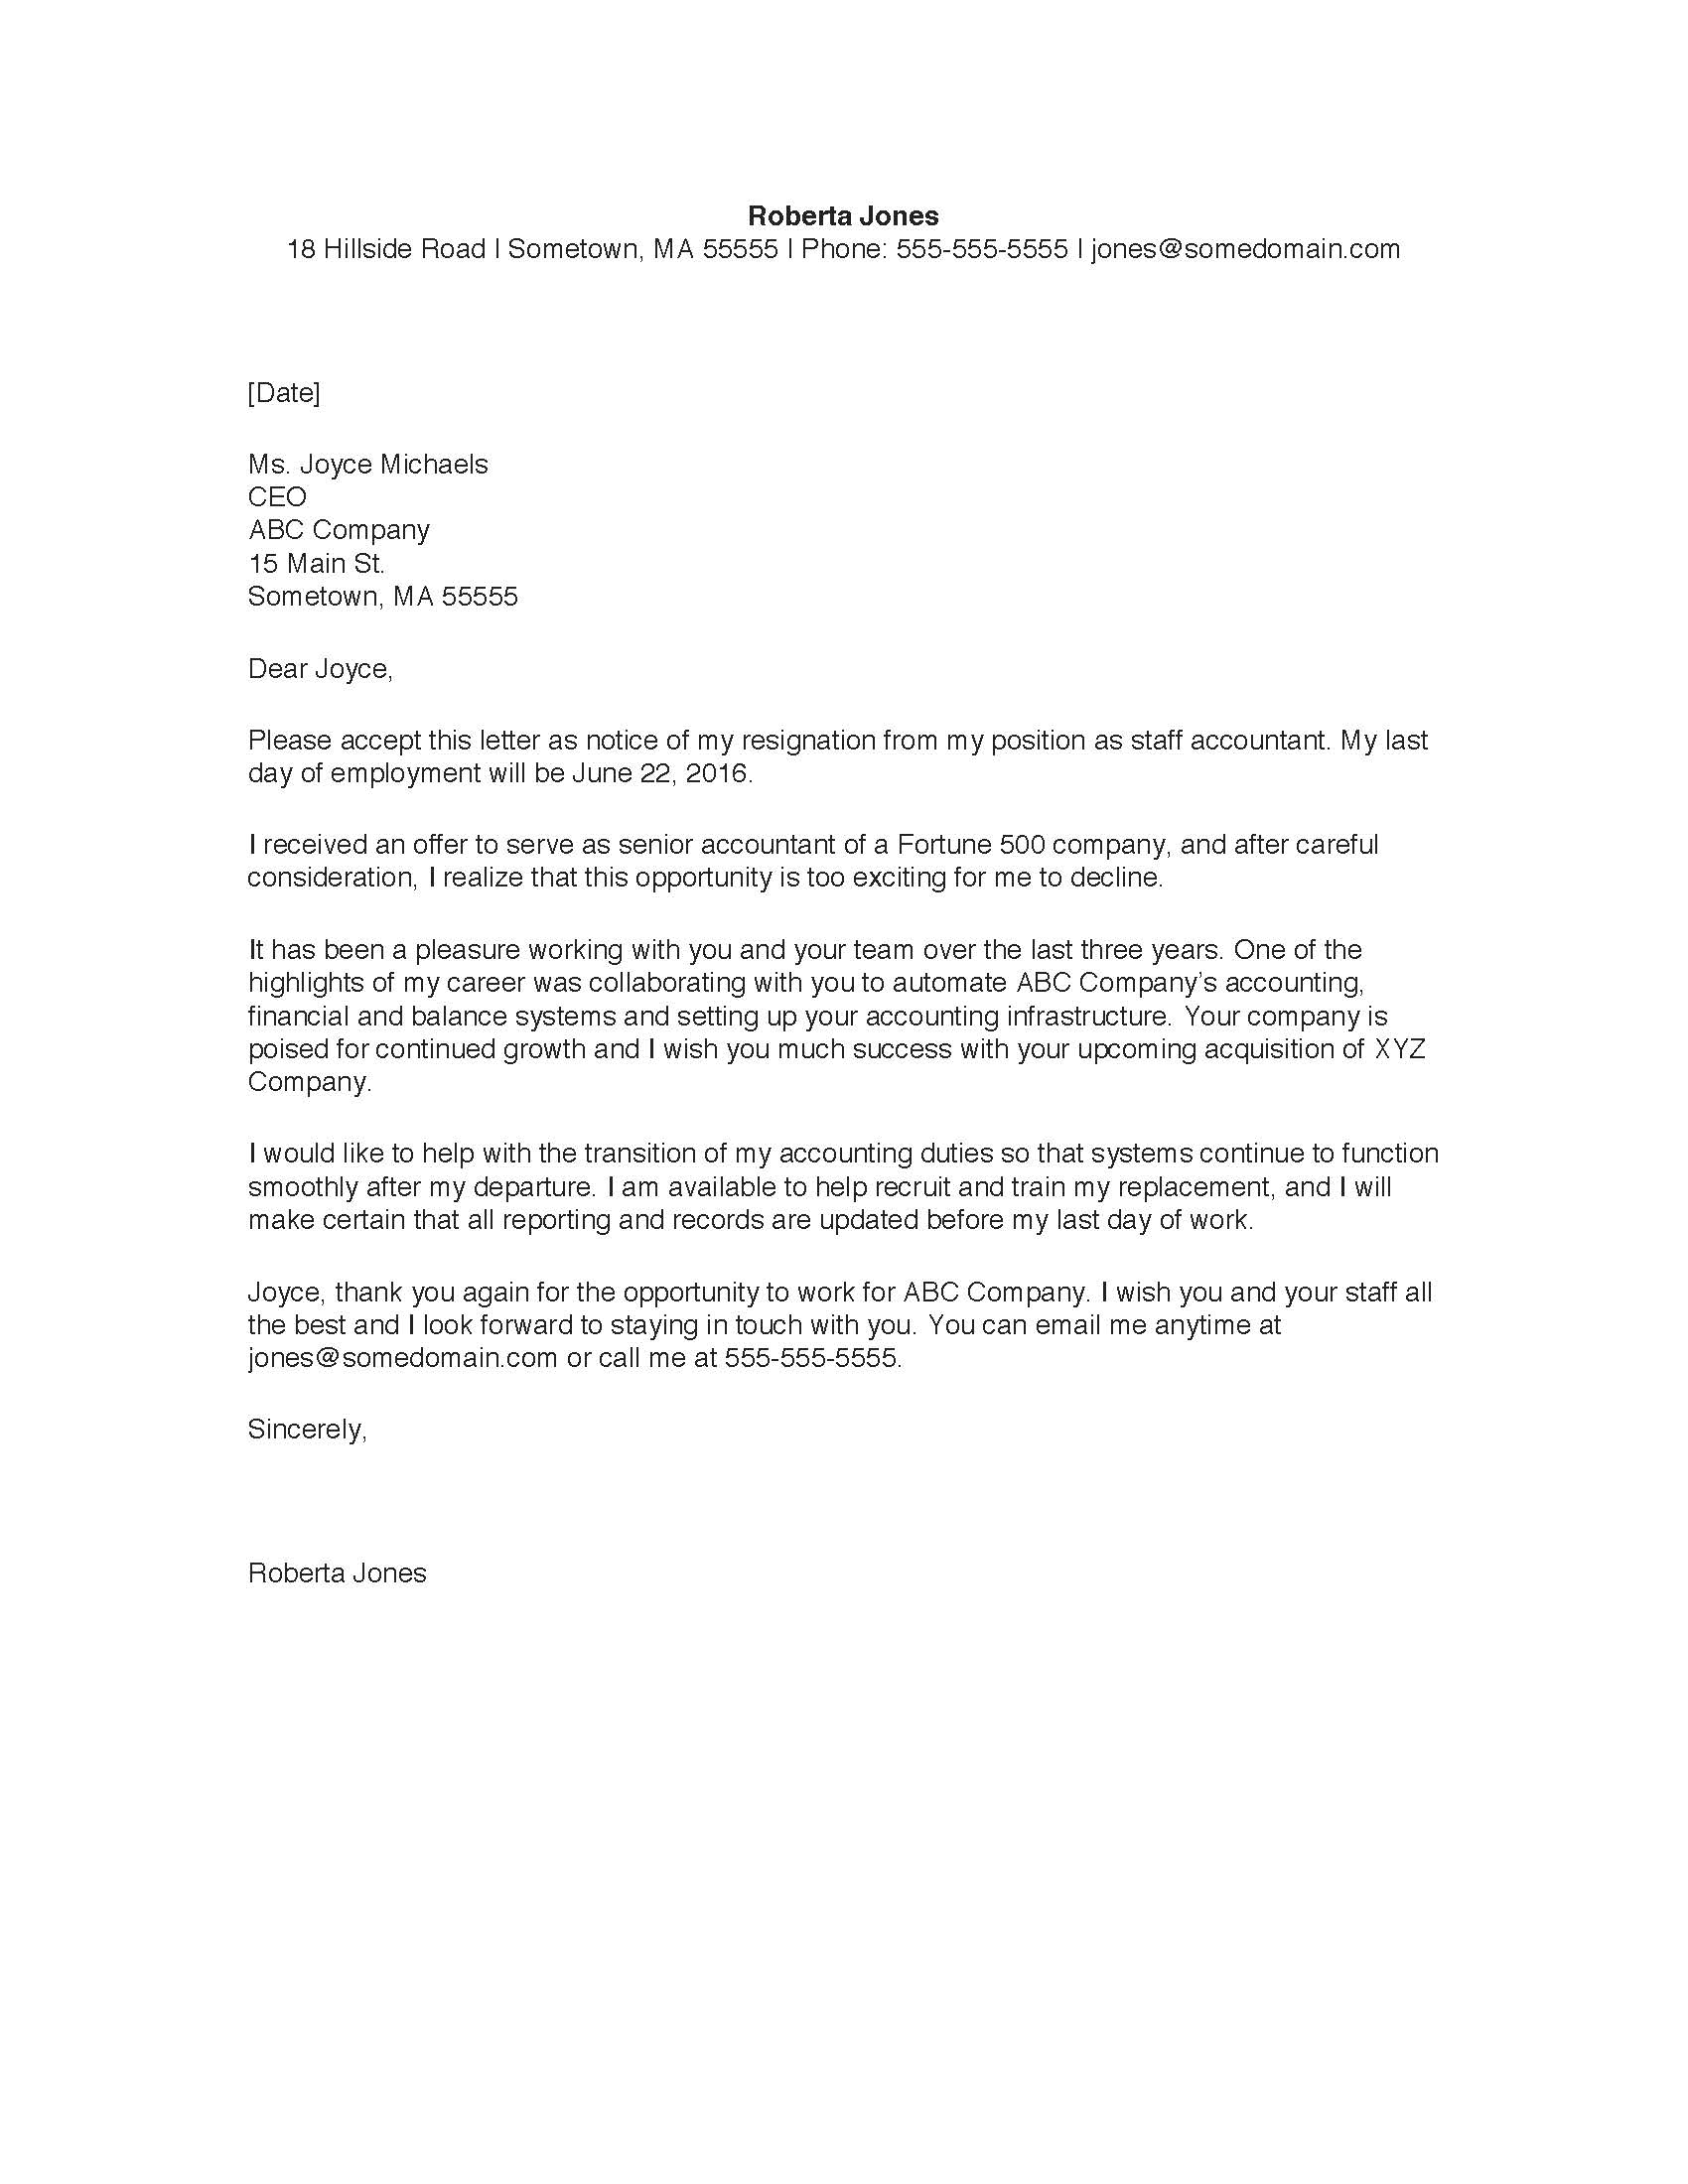 Sample resignation letter monster sample resignation letter altavistaventures Image collections